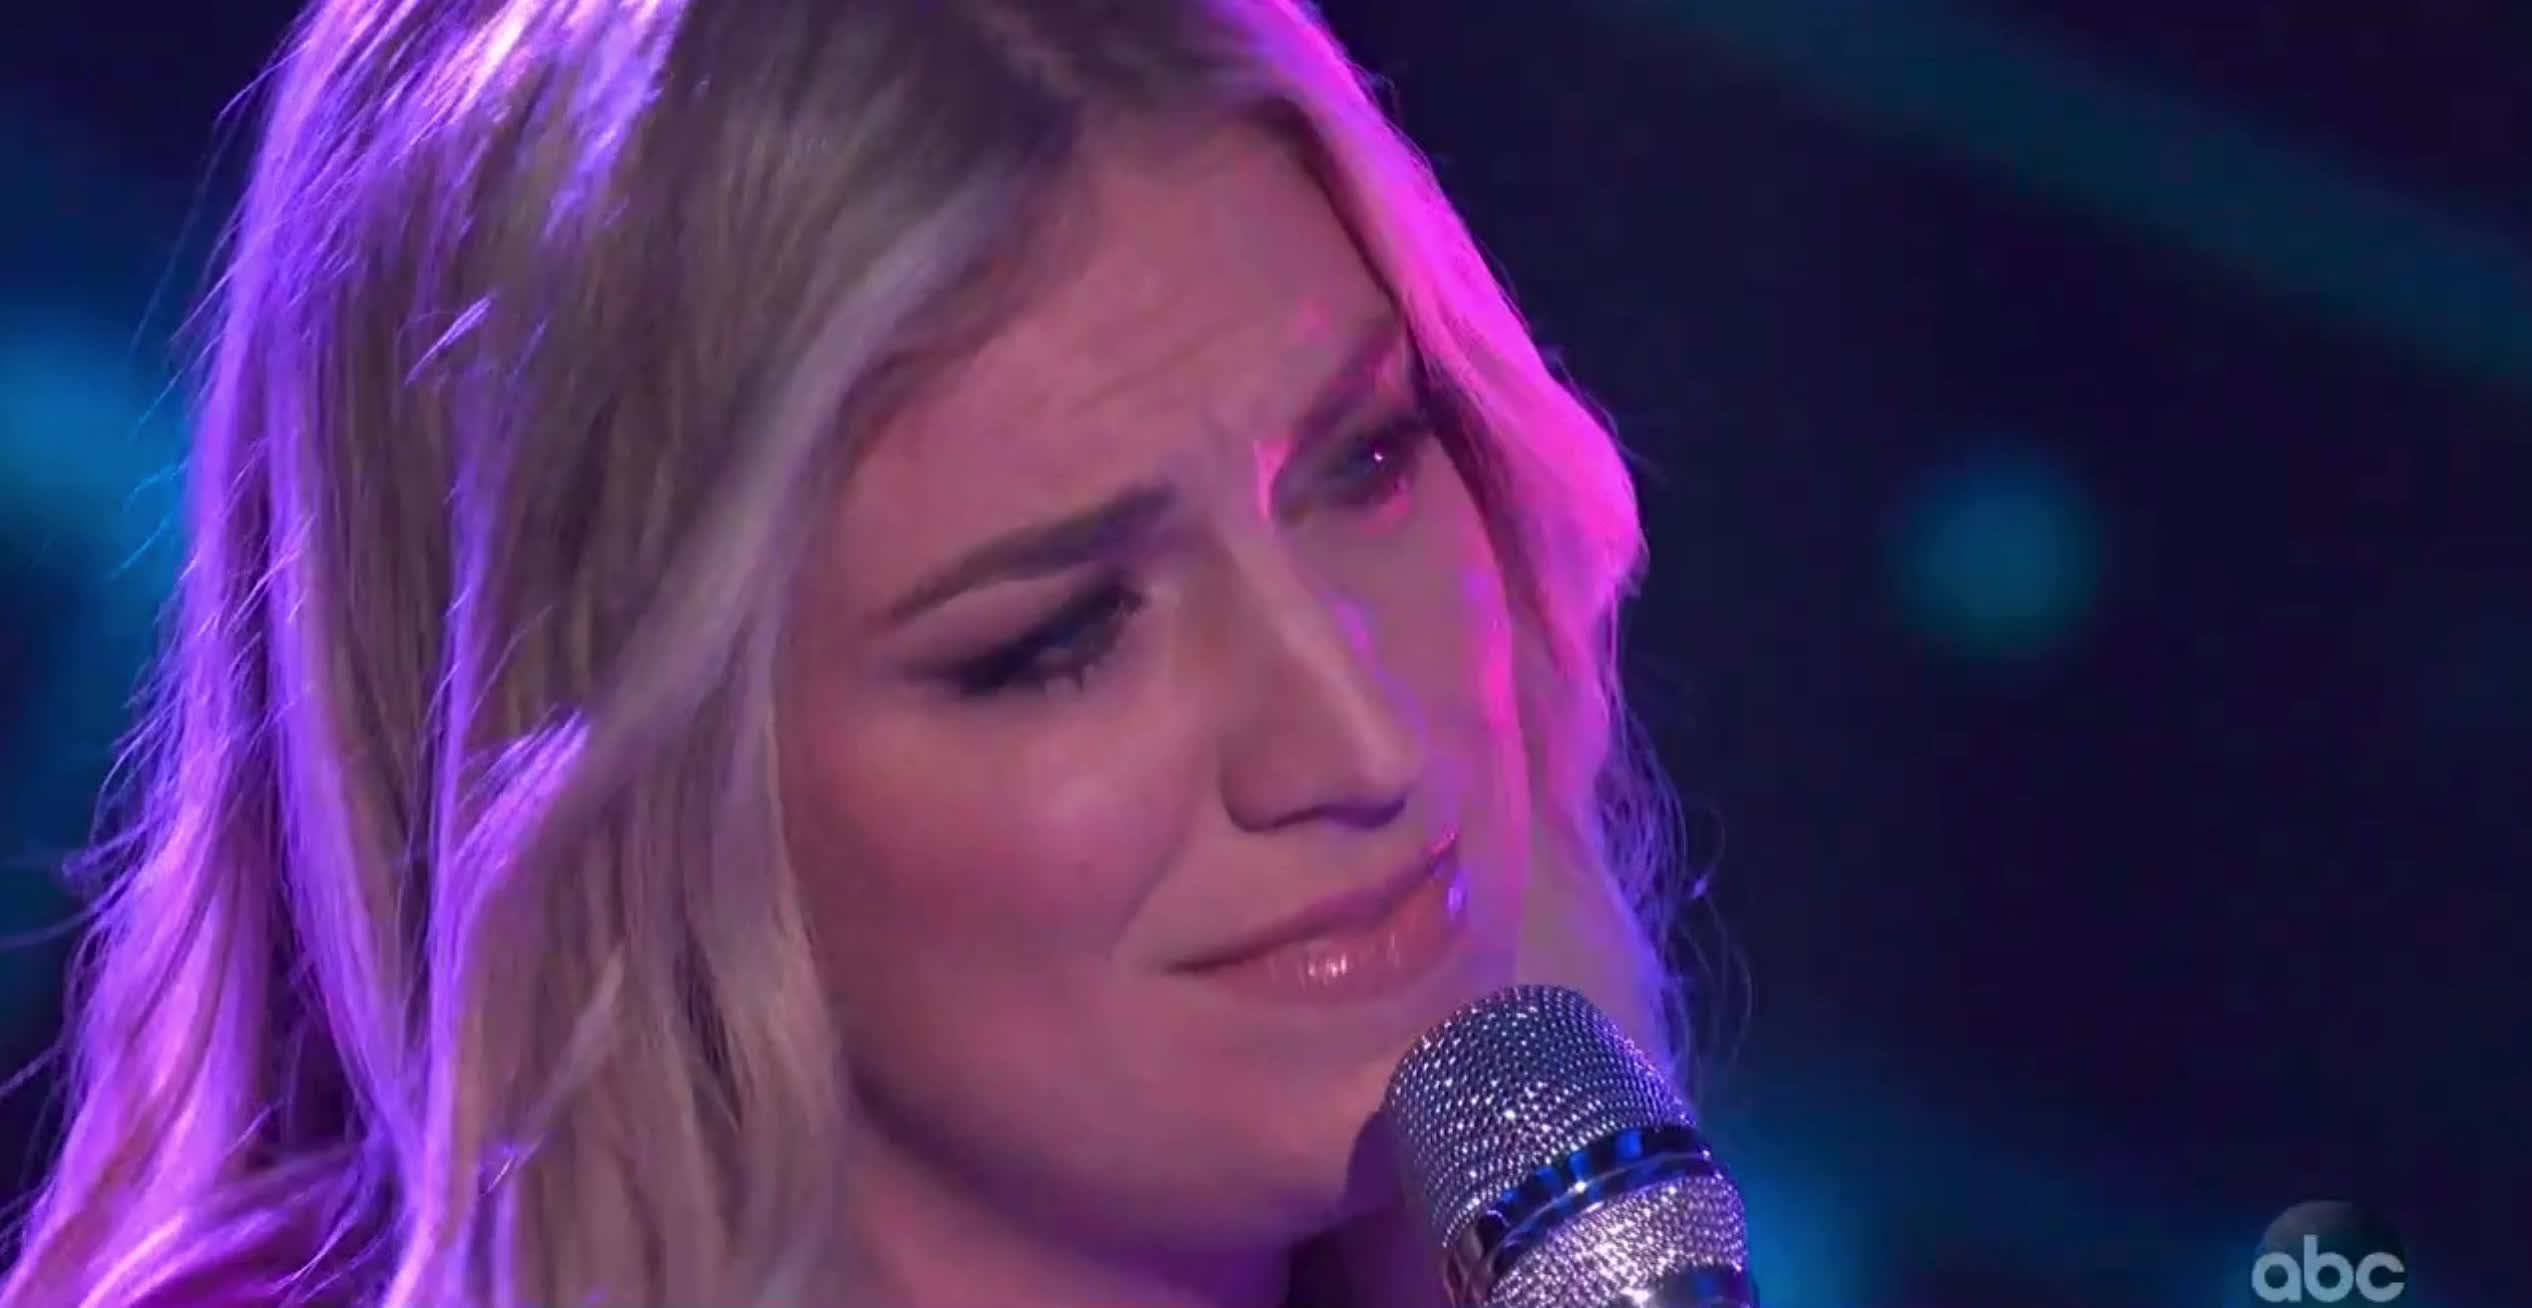 american idol, american idol season 17, americanidol, ashley hess, katy perry, lionel richie, luke bryan, ryan seacrest, season 17, singing, American Idol Ashley Belting GIFs